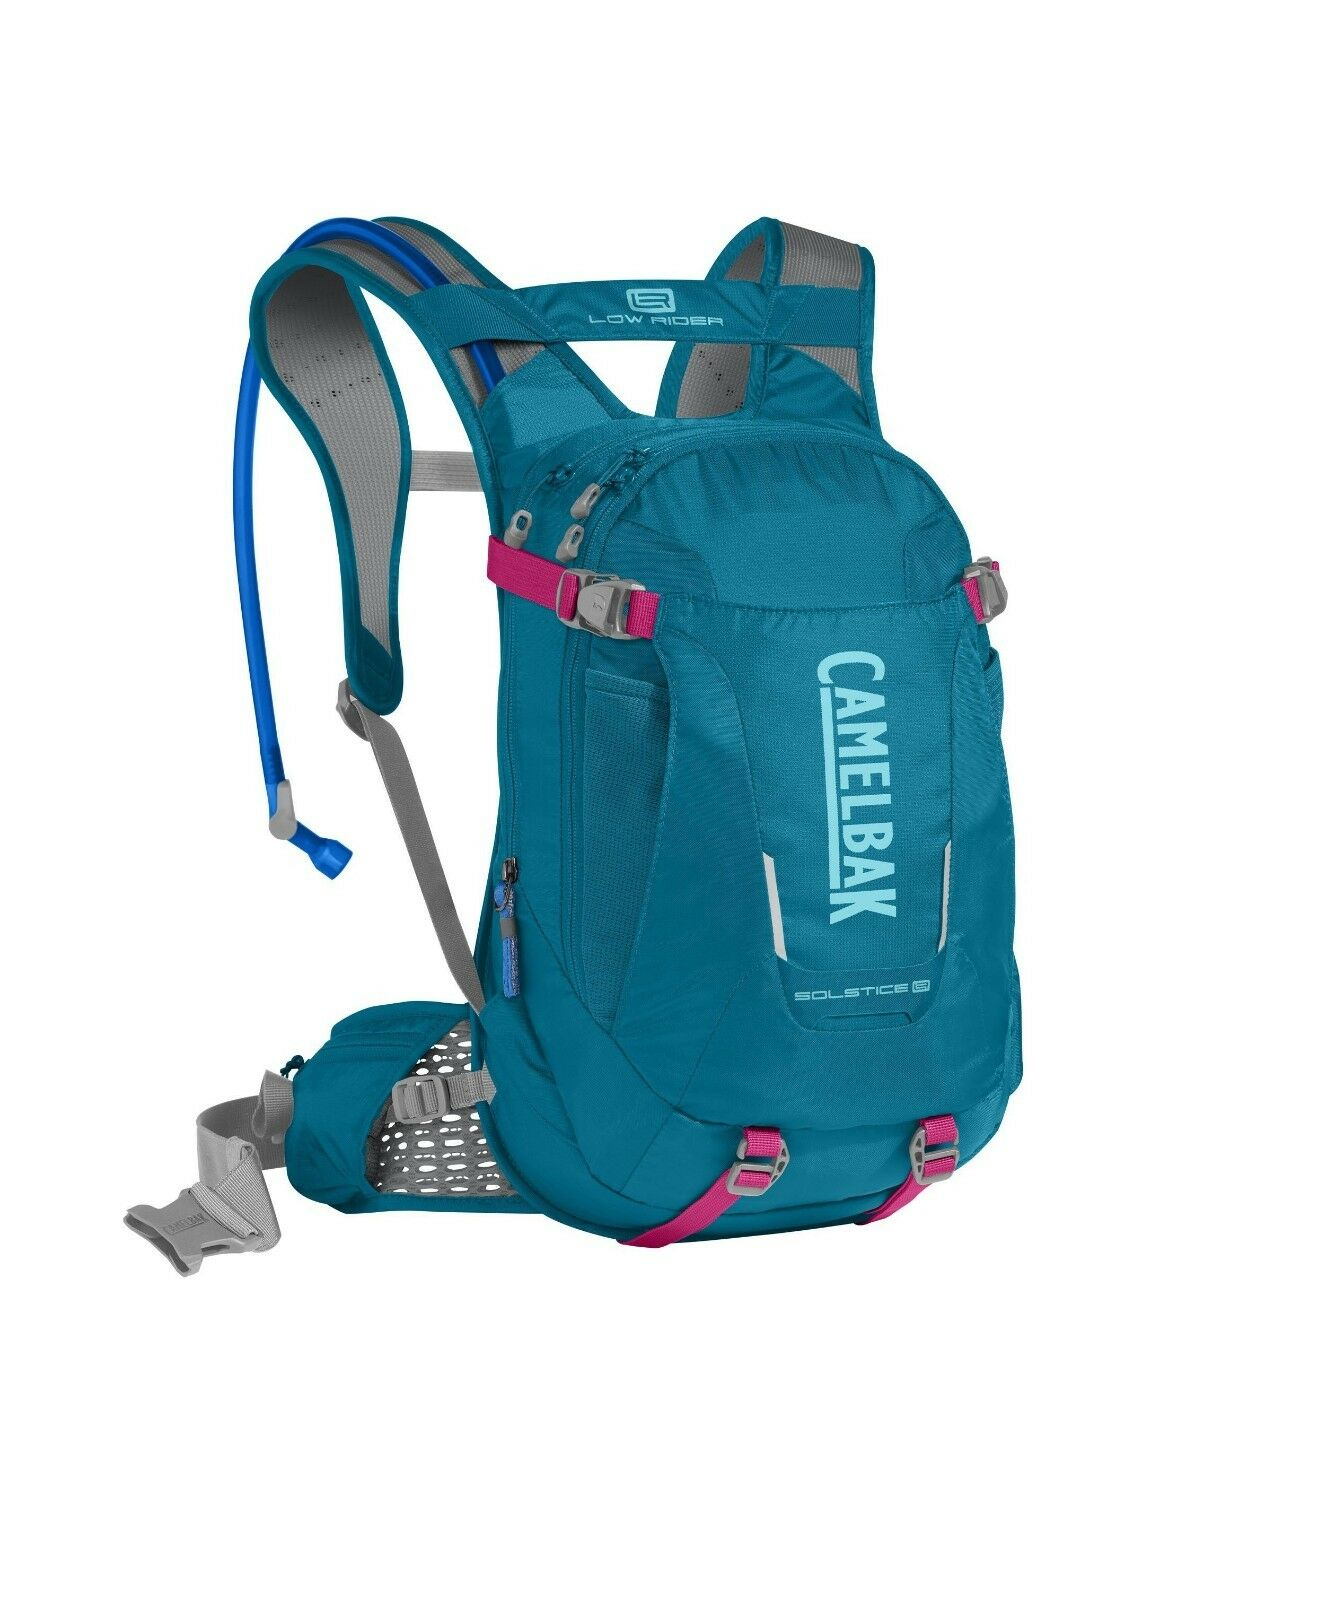 CamelBak 2019 Skyline LR 10 Hydration System 3L Teal Turquoise